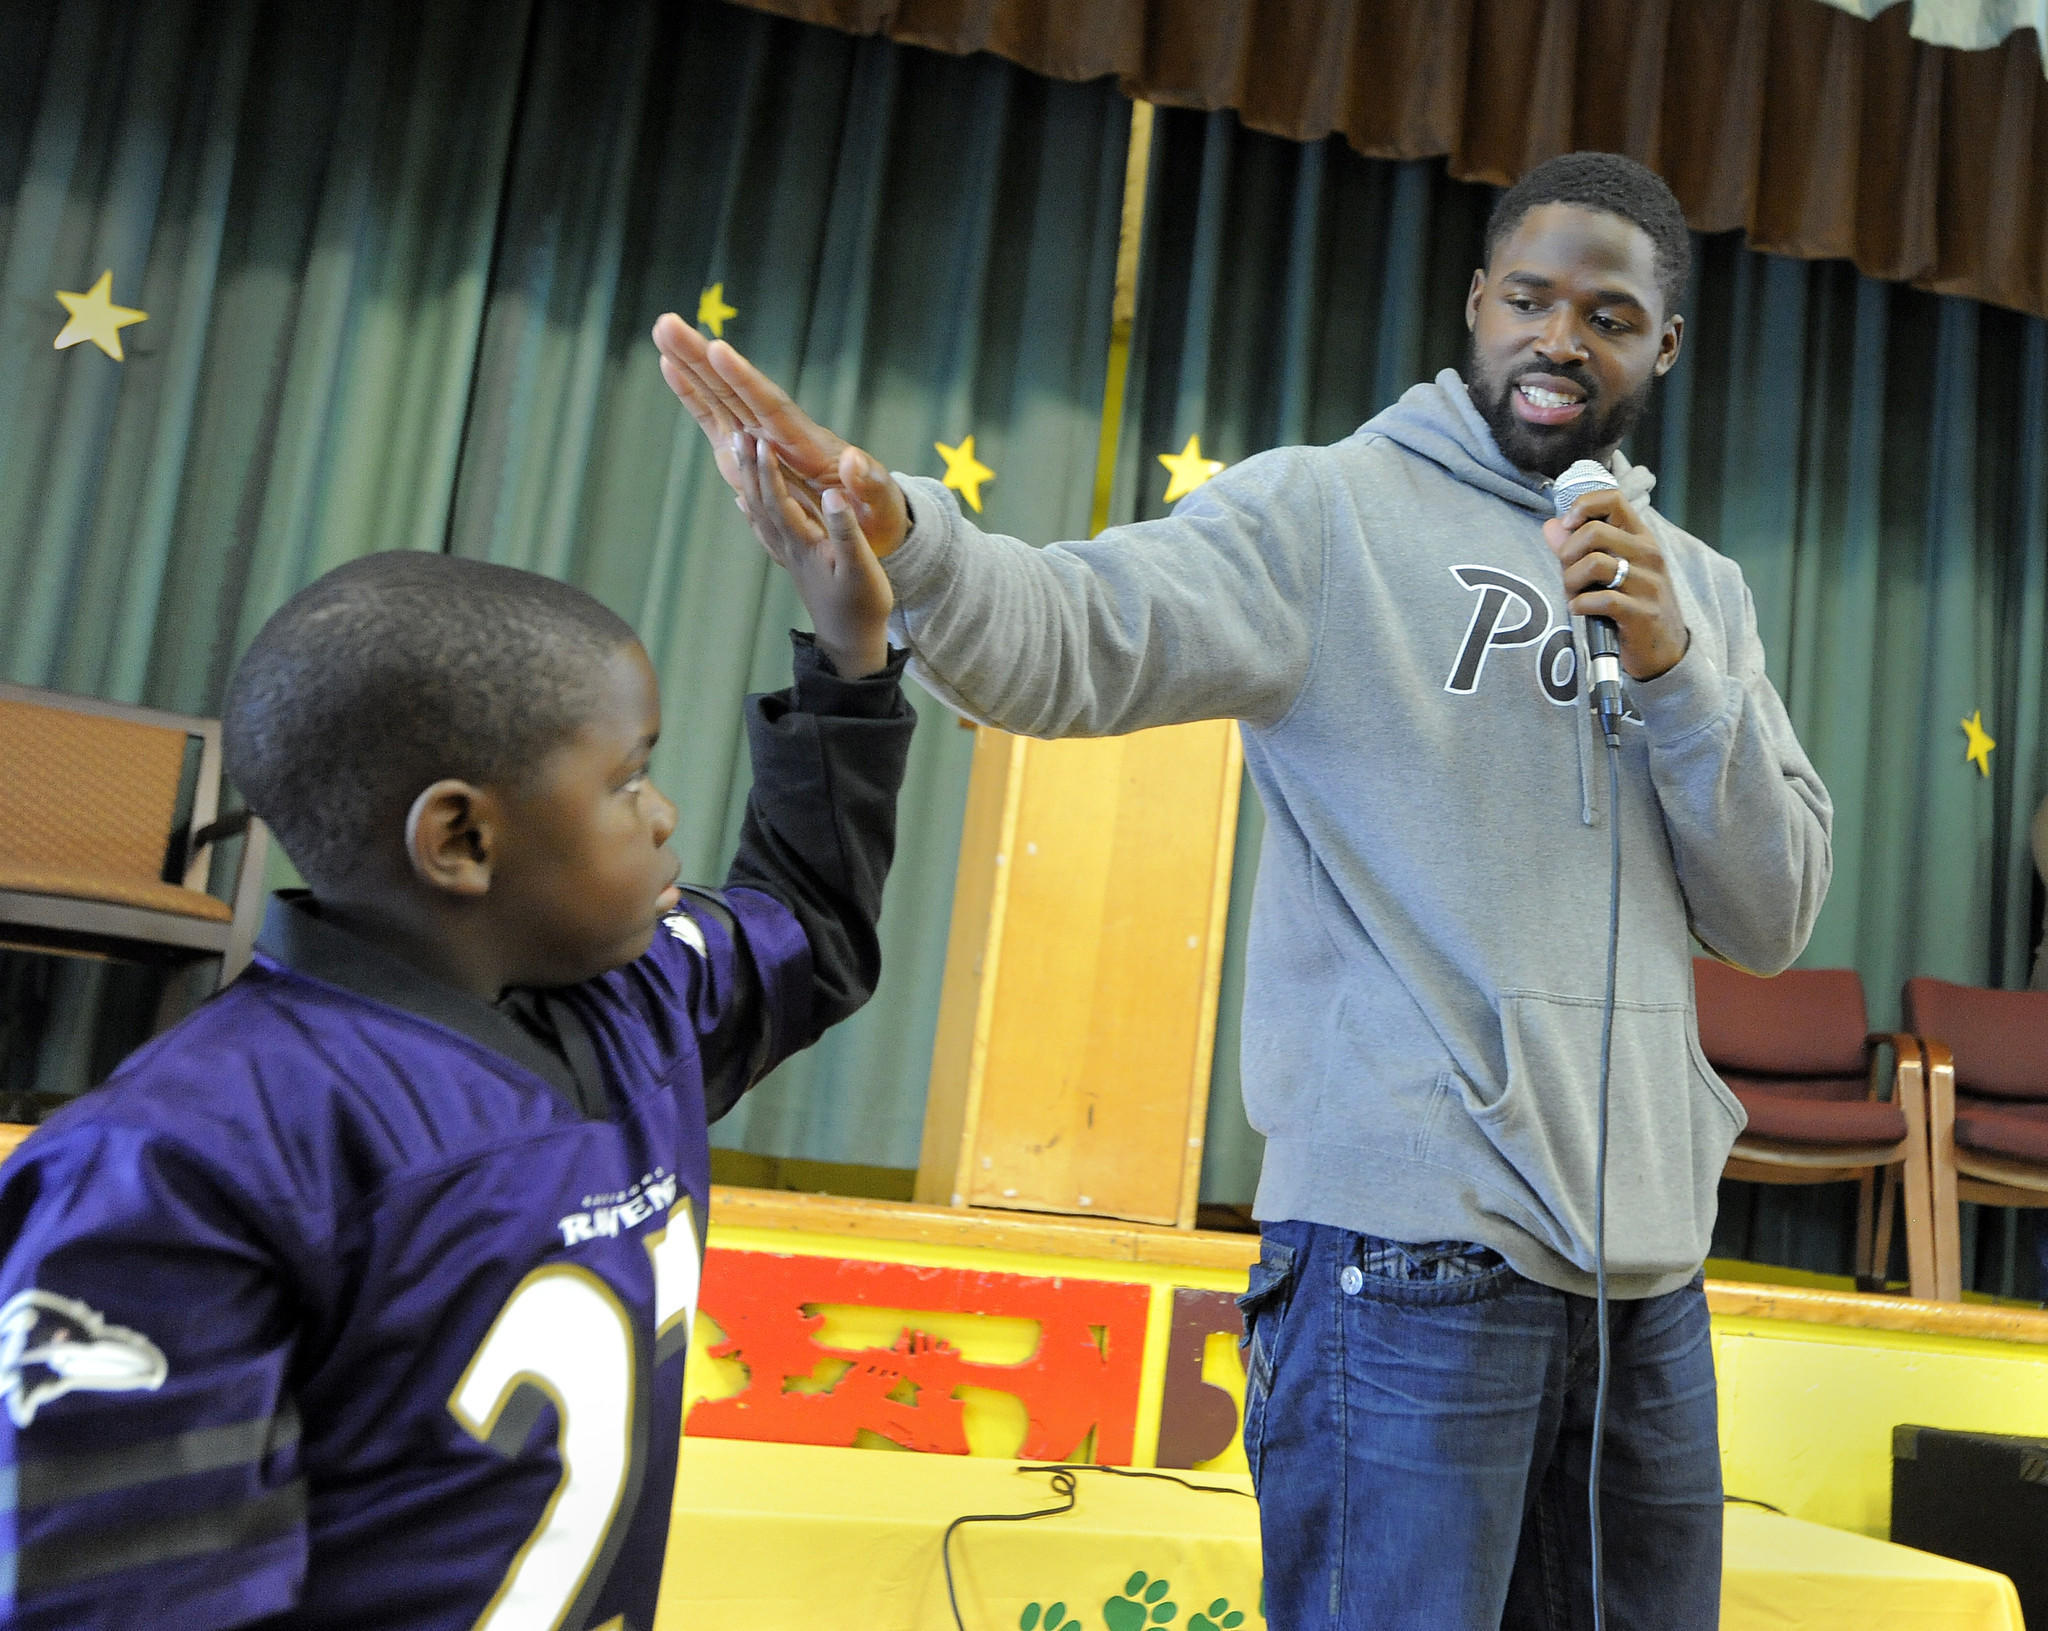 Ravens wide receiver Torrey Smith interacts with a first grader at Gwynn Falls Elementary last October.